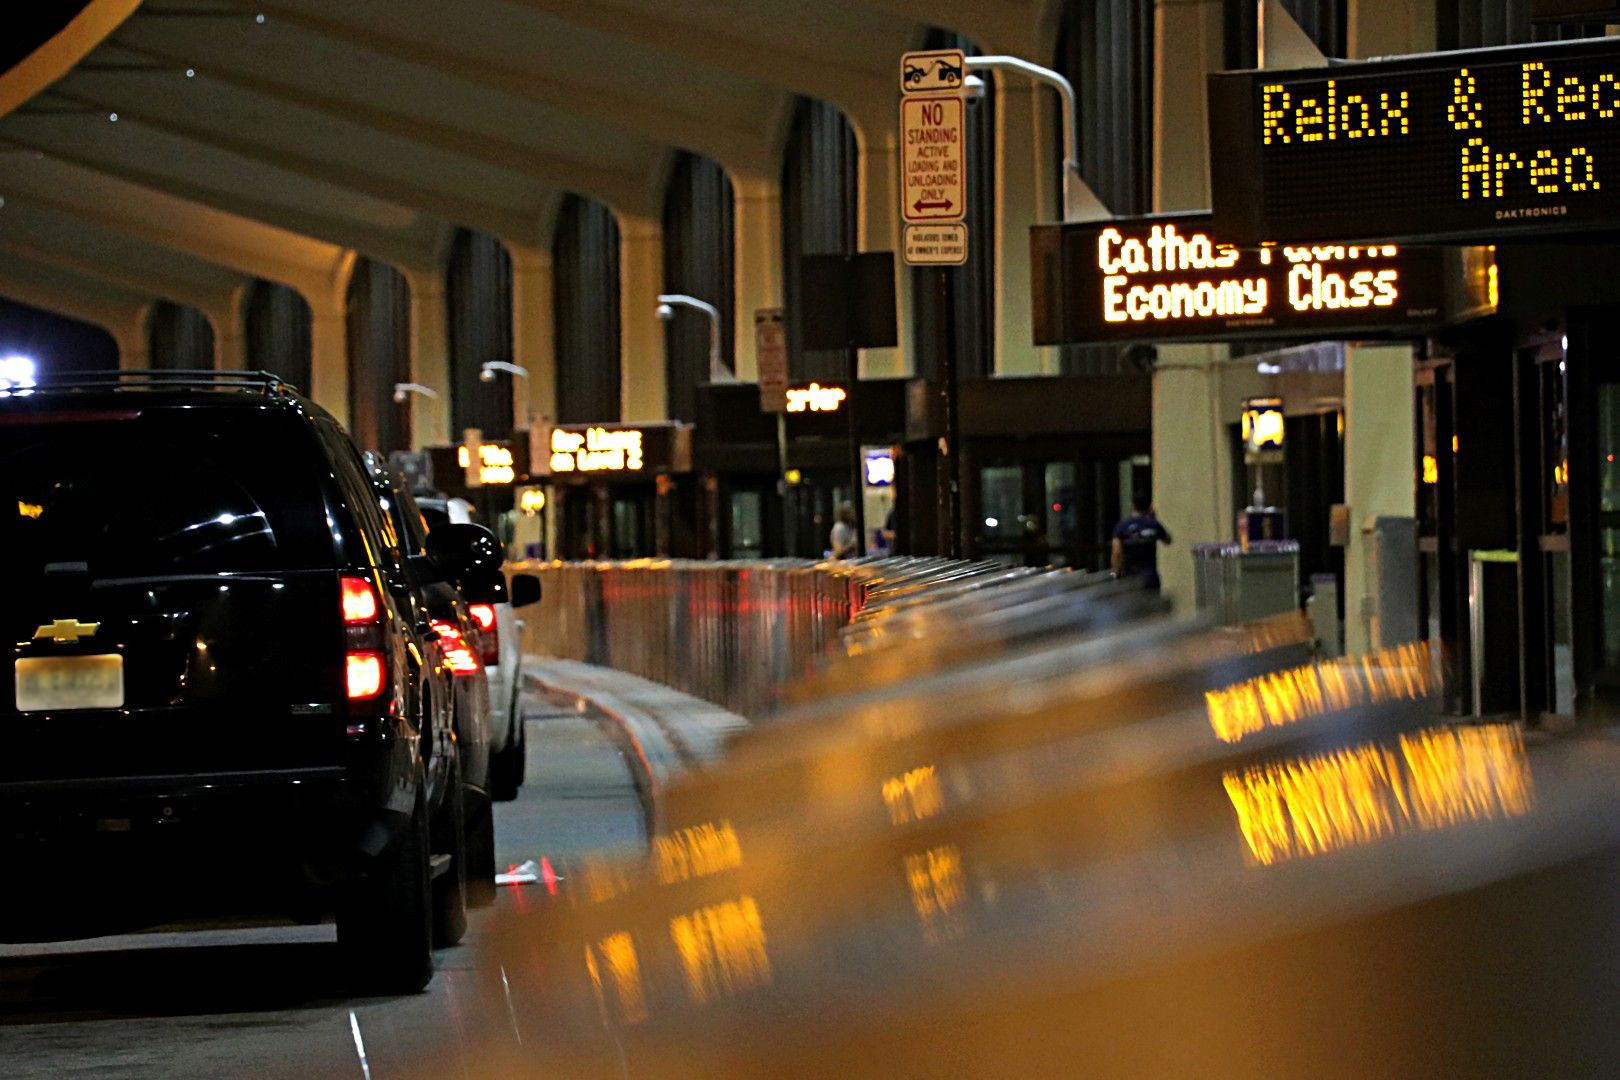 Limo From Ewr Limo Car Service To Ewr Limo To Newark Airport